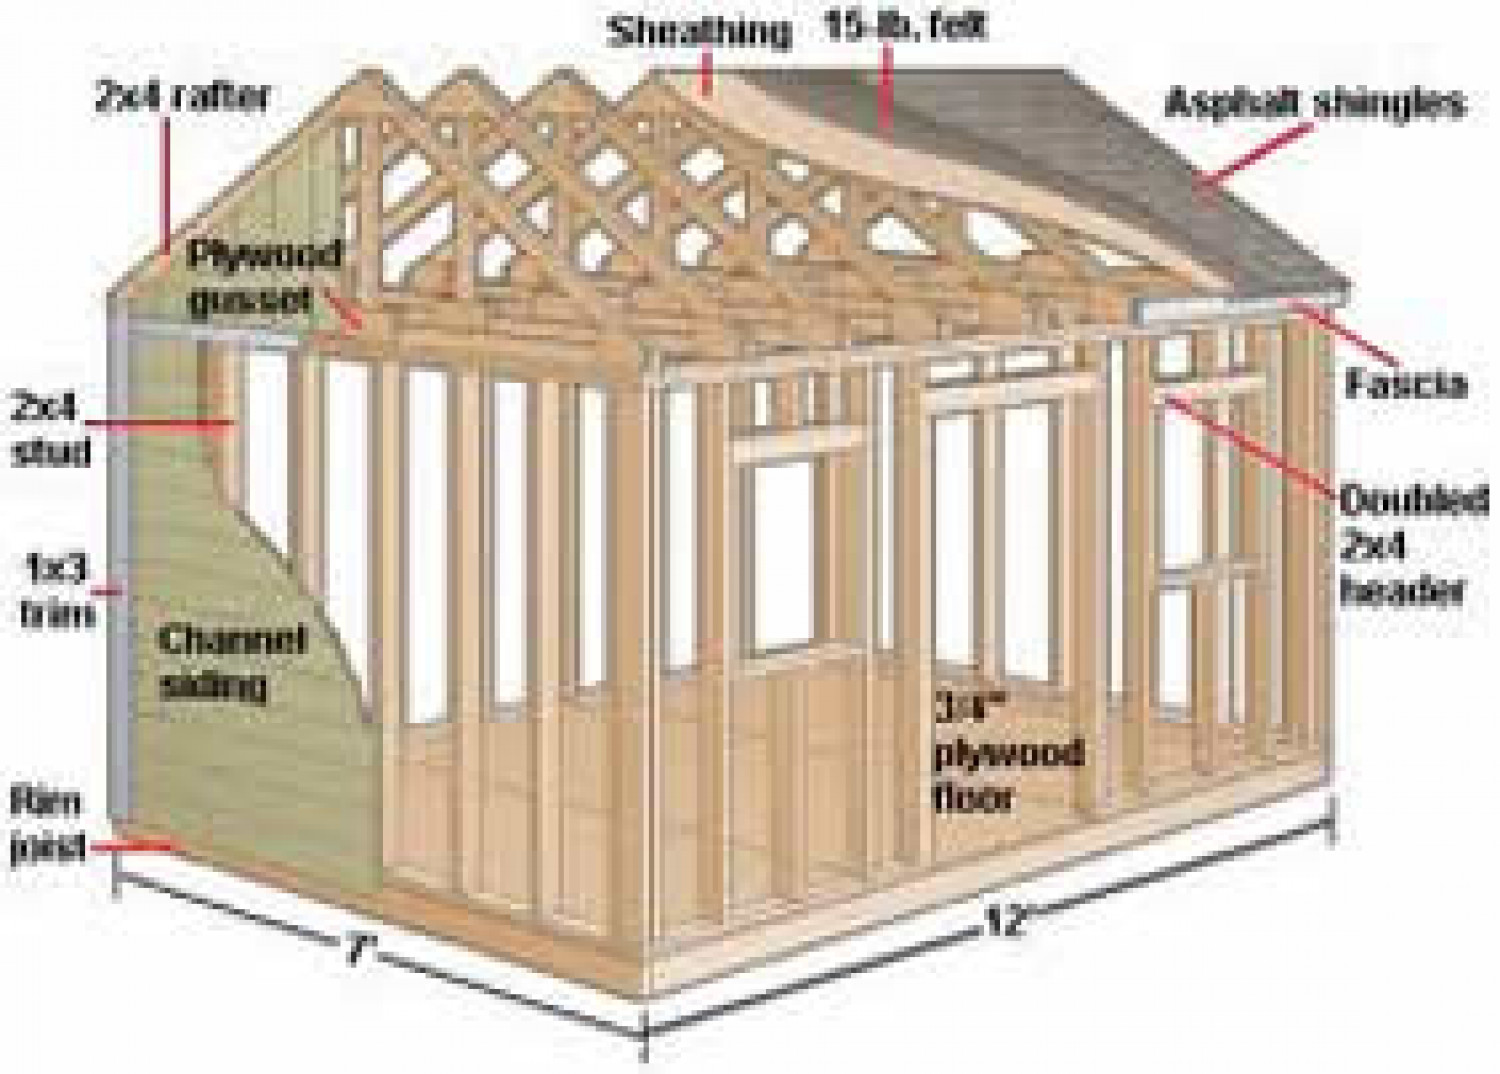 diy storage shed plans 10x12 download cheap sheds materials list cost ...